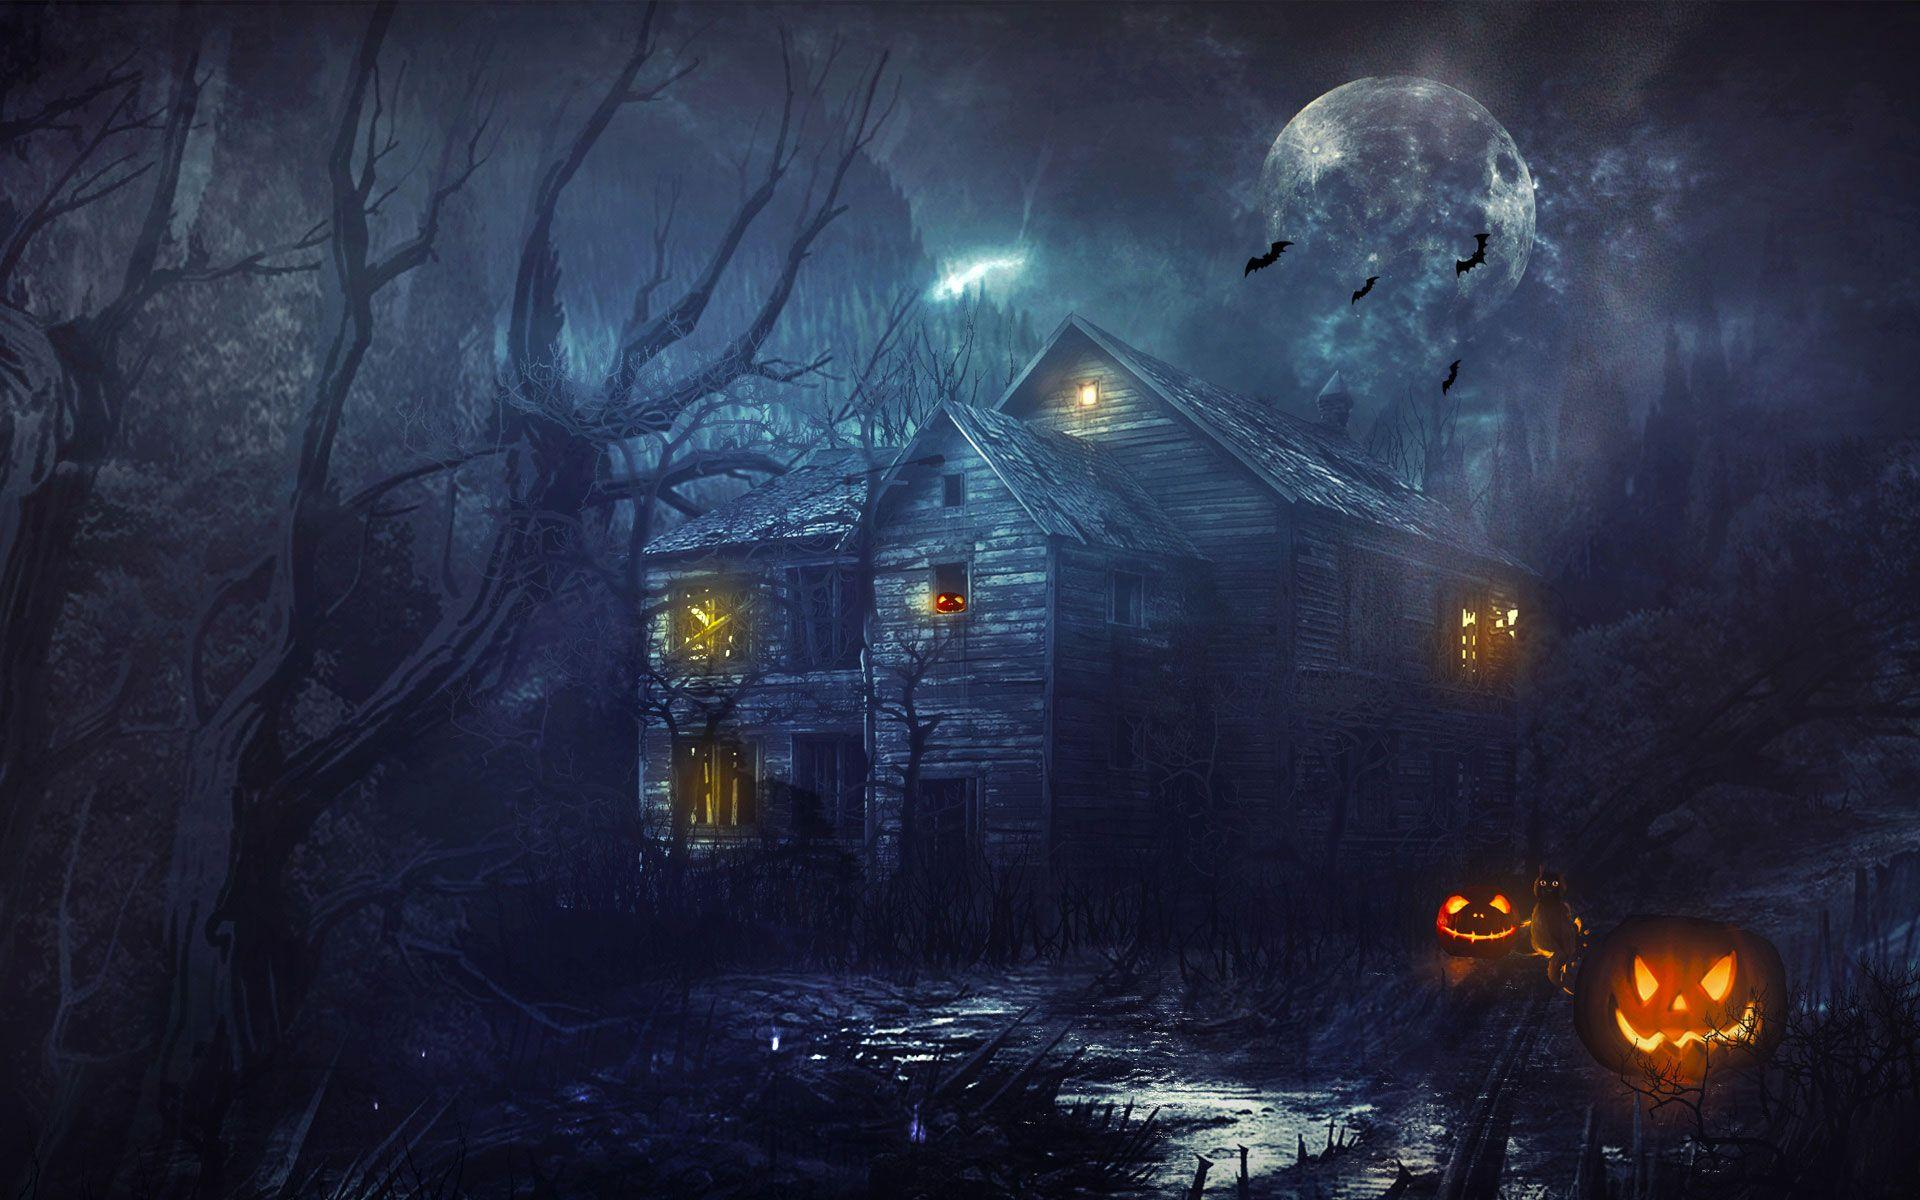 50+ Scary Halloween 2018 HD Wallpapers, Backgrounds, Pumpkins ...